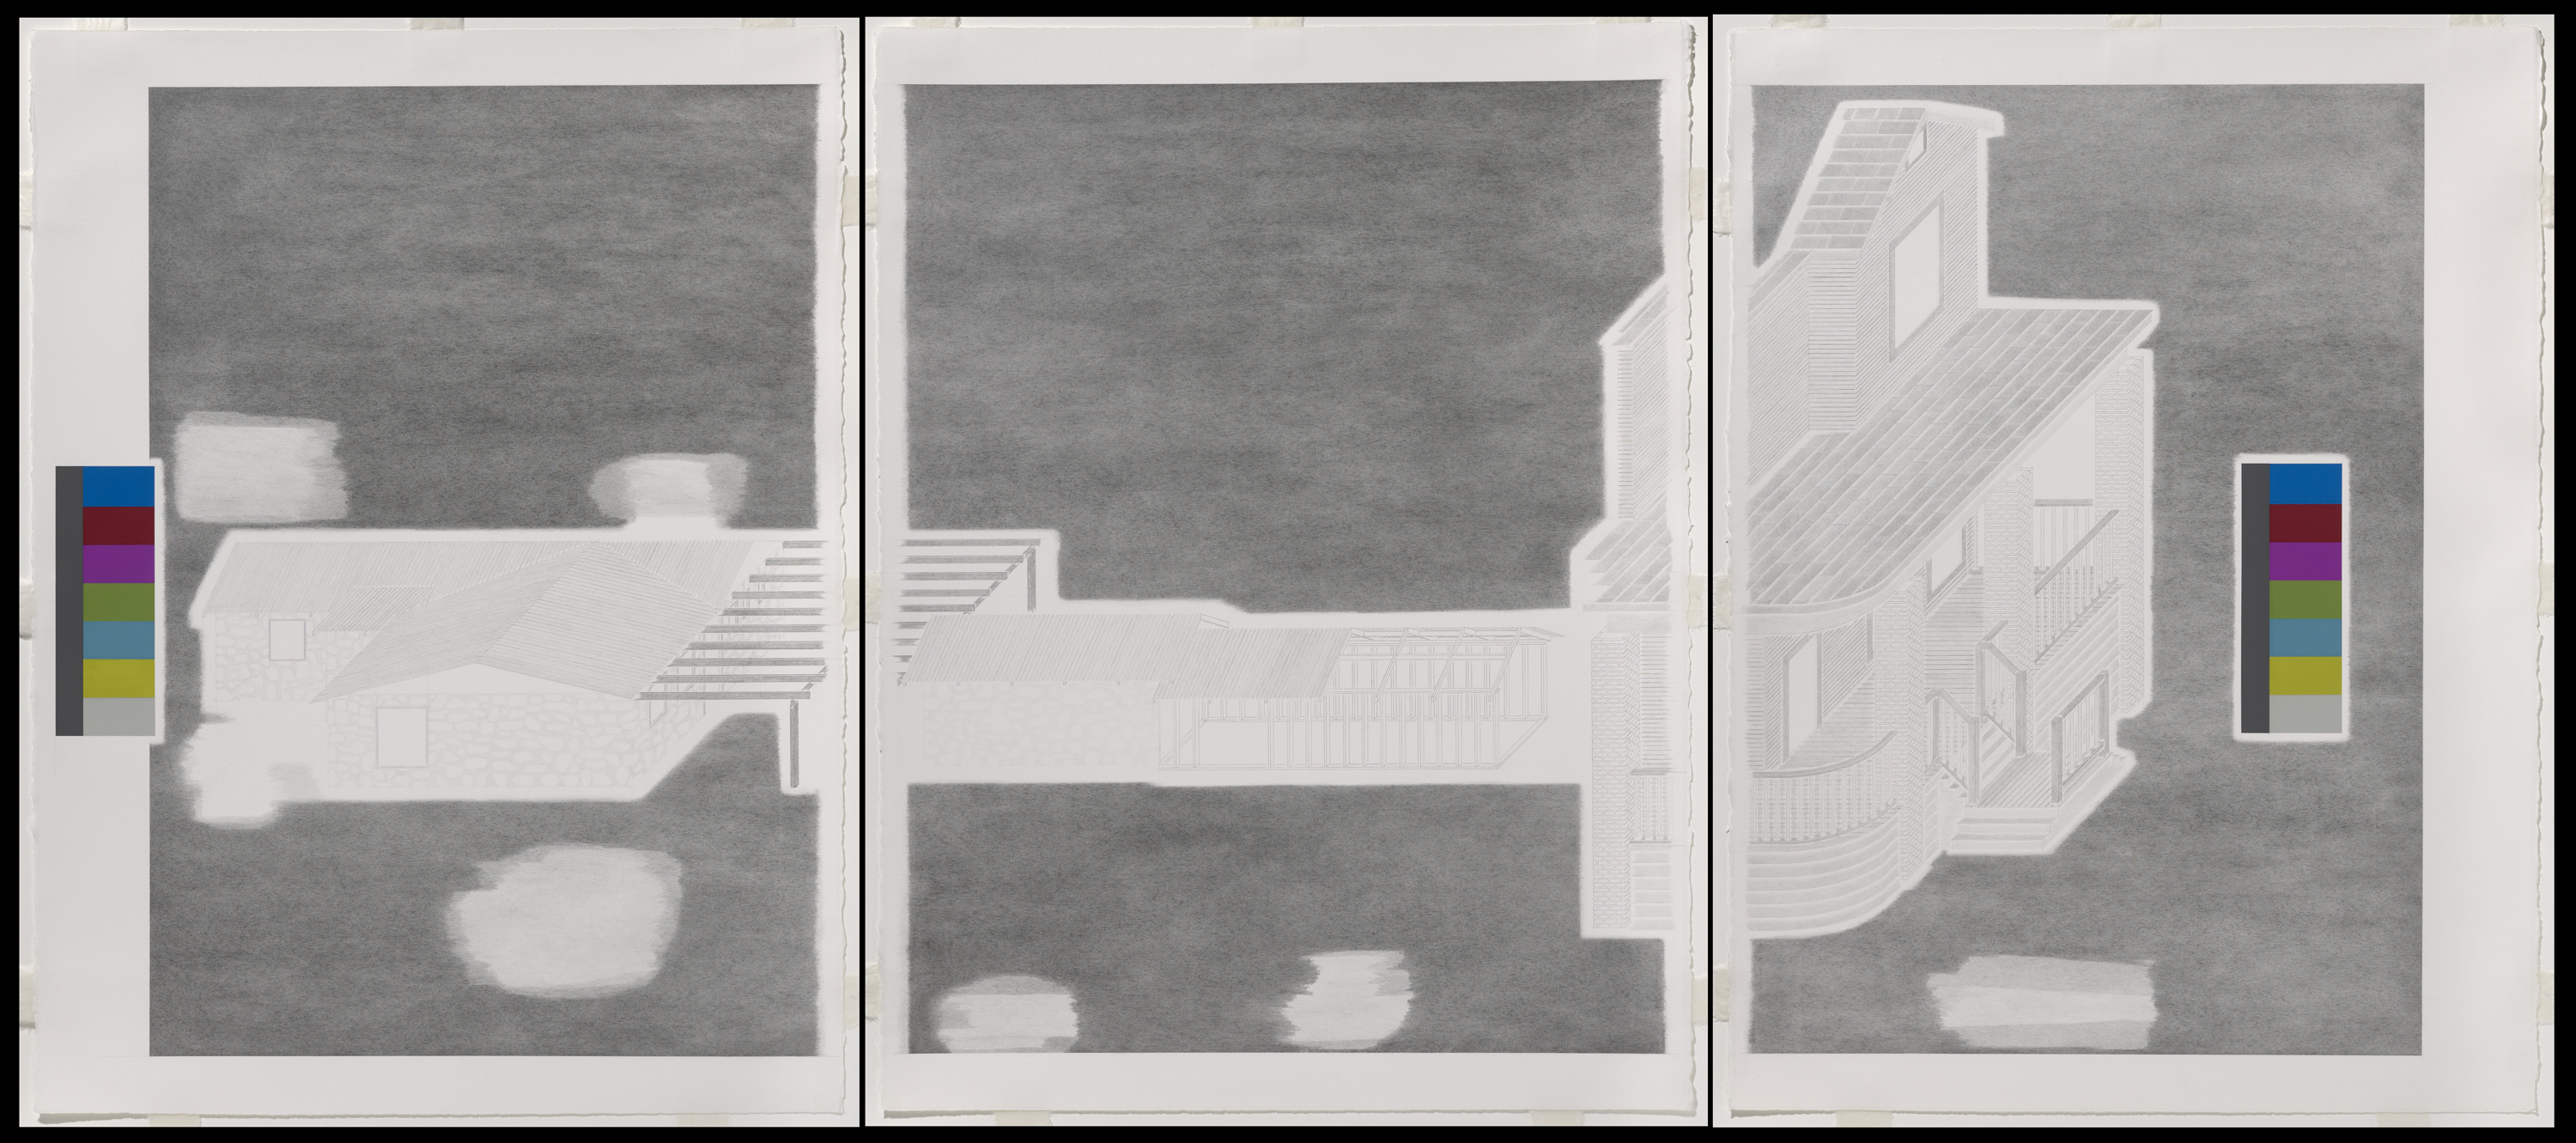 Augusto Di Stefano, plan (for a history), 2011, graphite, gouache and ink on paper, three sheets, each 30 x 22 1/2 inches